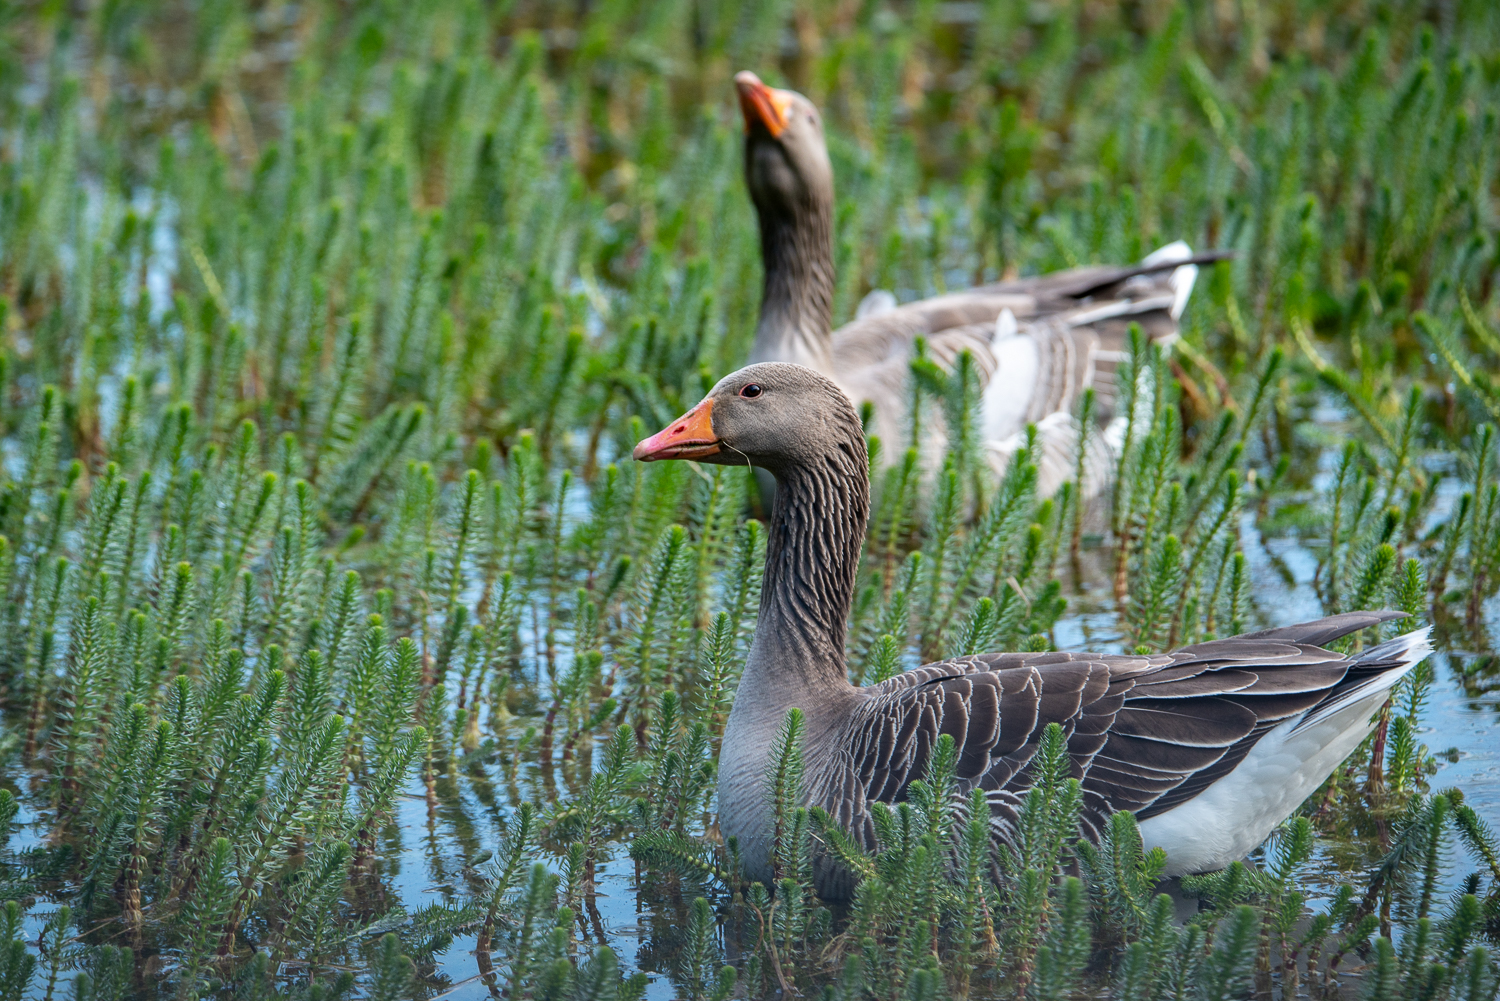 Greylag geese in the reeds